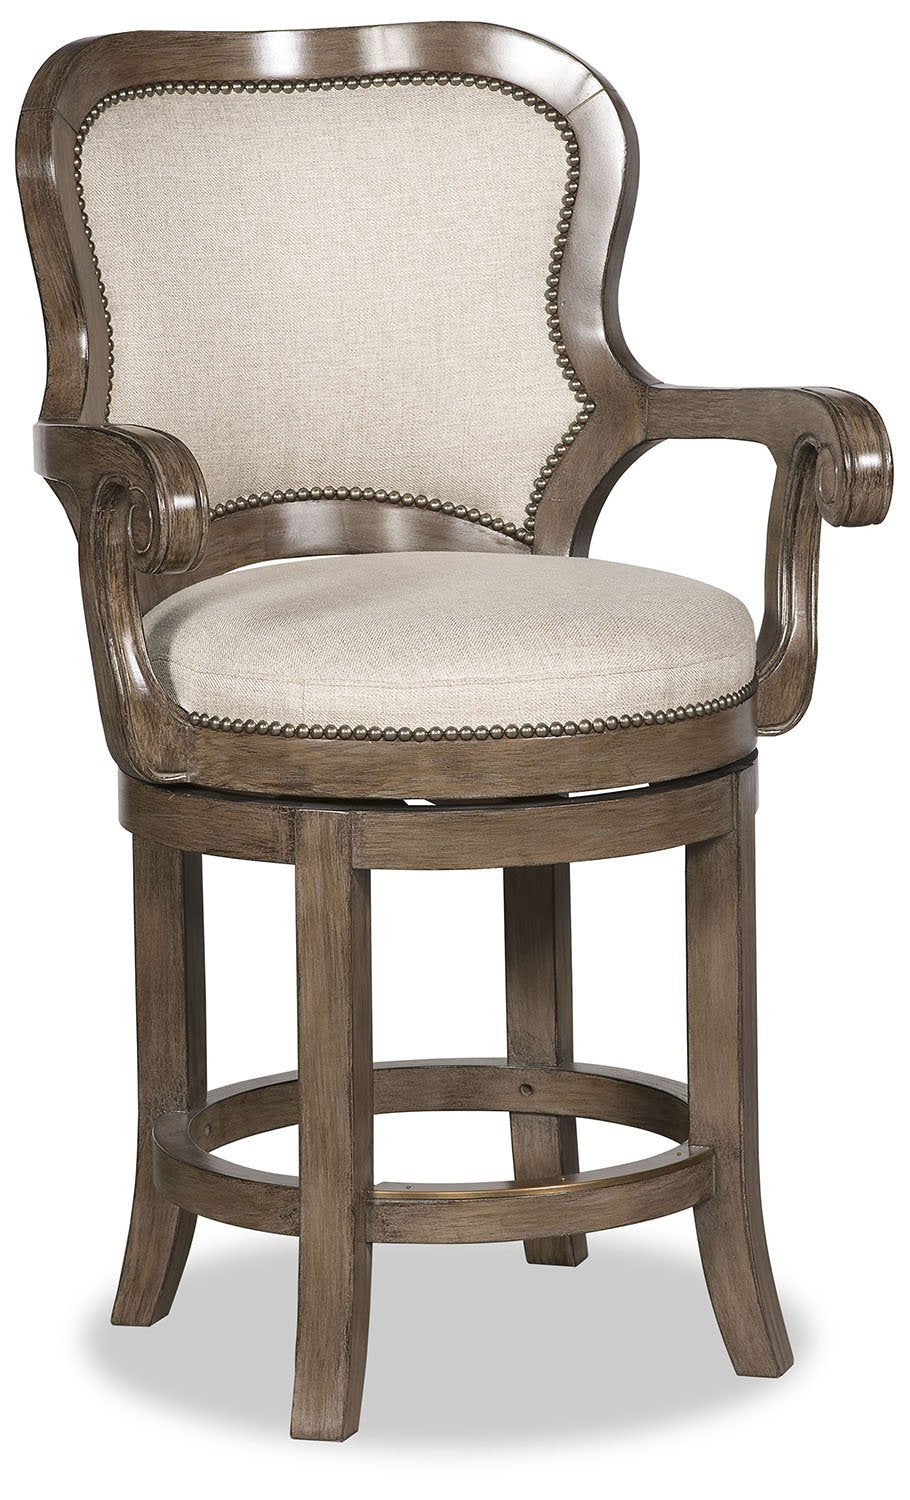 Nate Fabric Swivel Barstool - Light